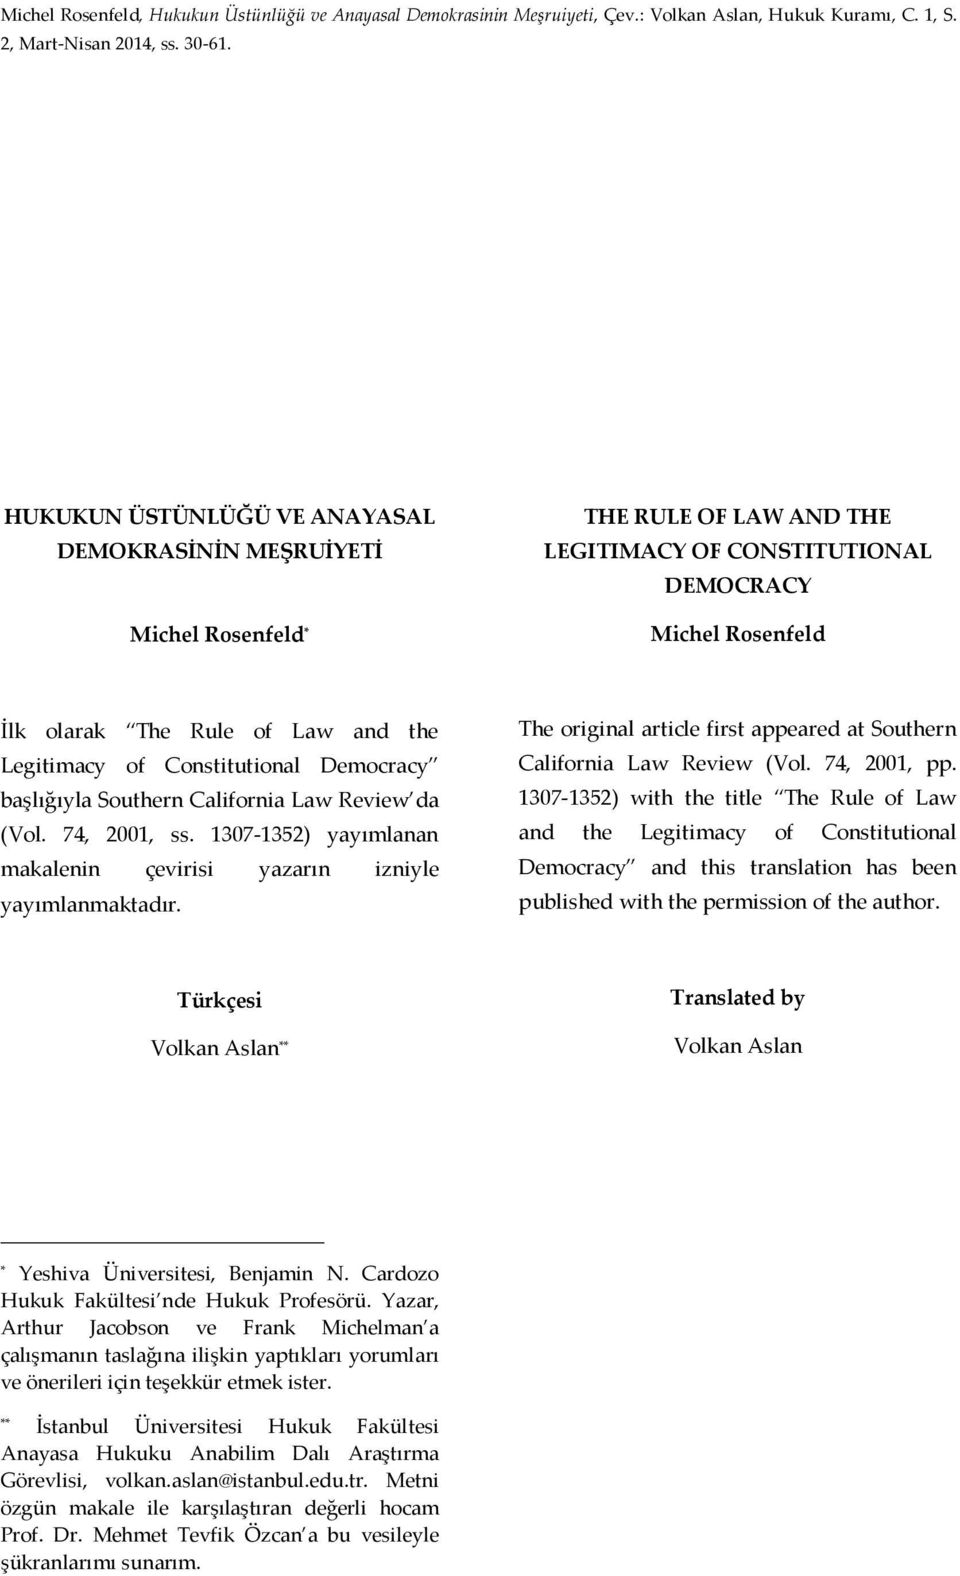 of Constitutional Democracy başlığıyla Southern California Law Review da (Vol. 74, 2001, ss. 1307-1352) yayımlanan makalenin çevirisi yazarın izniyle yayımlanmaktadır.